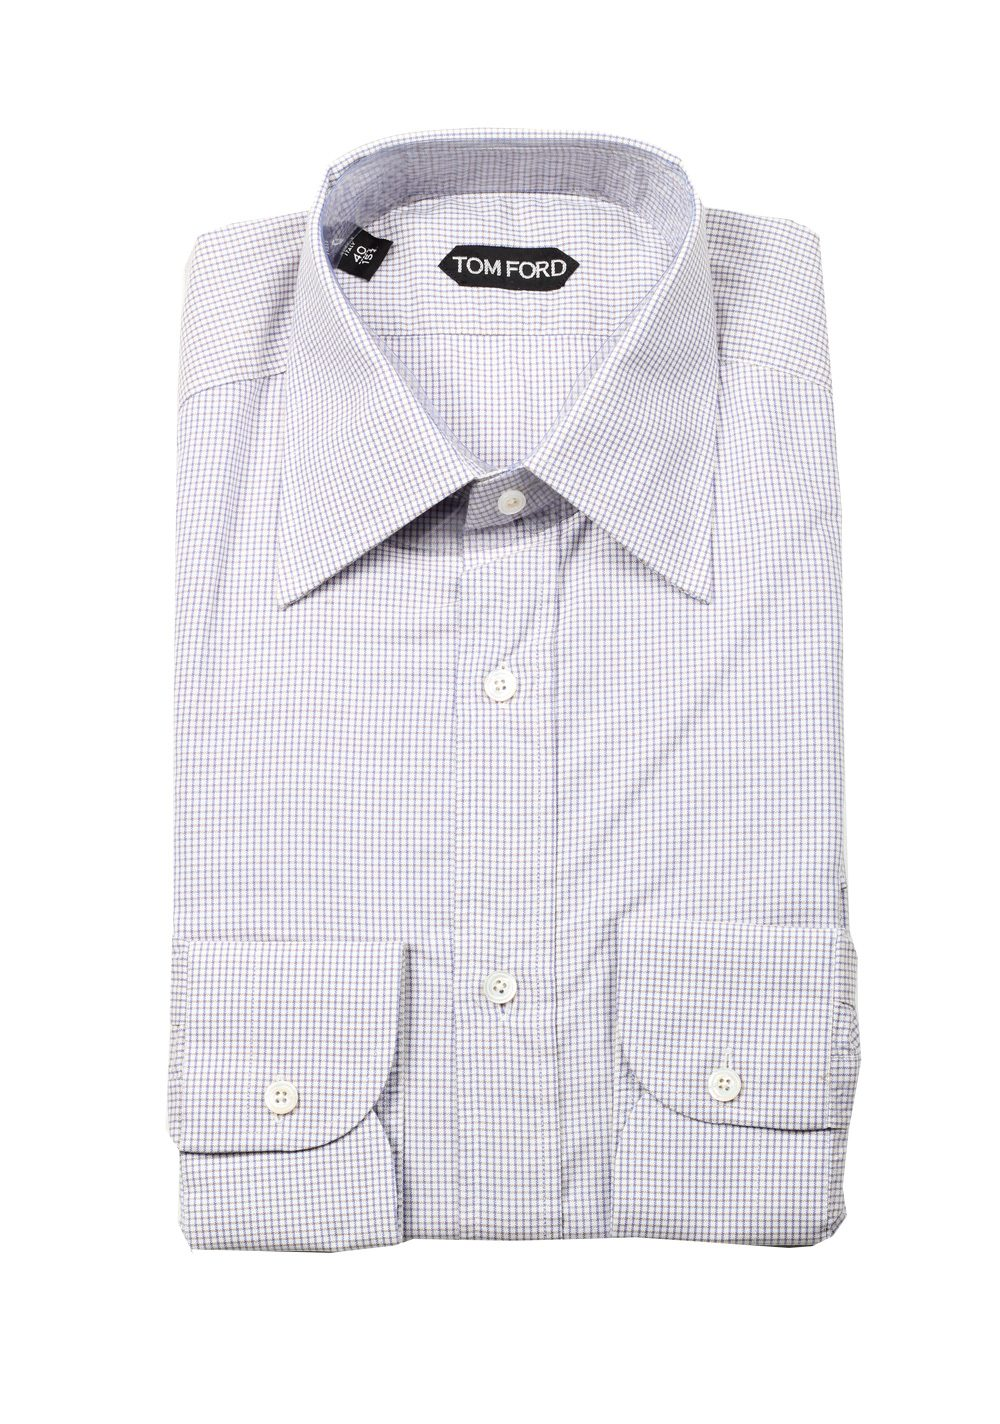 Tom ford checked purple dress shirt size 40 15 75 u s for Size 15 dress shirt